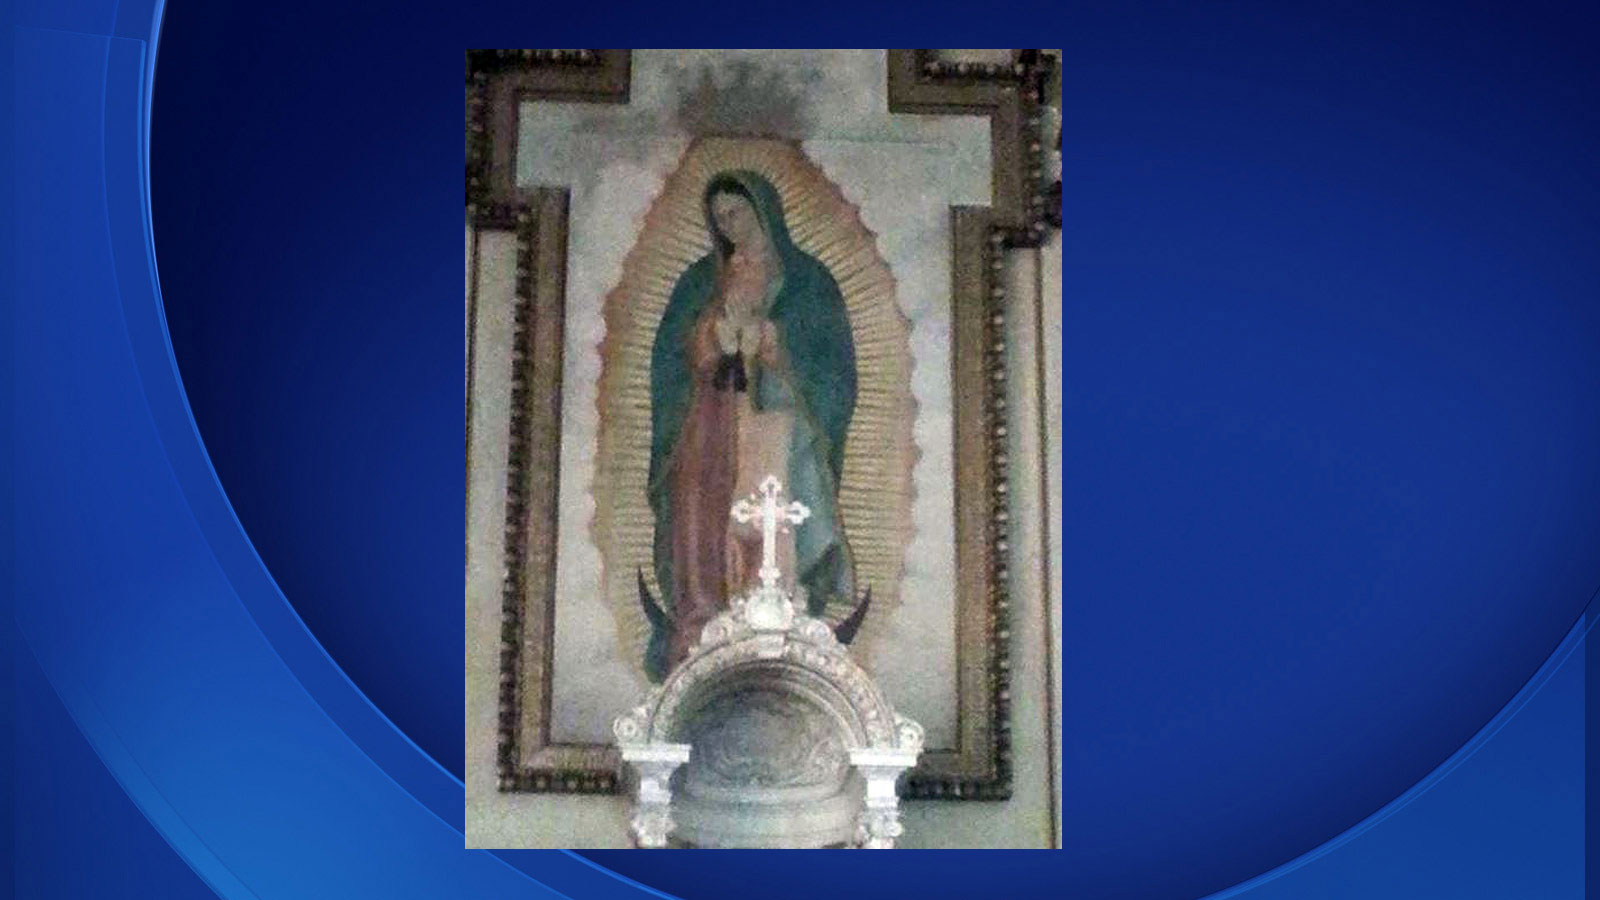 (credit: Our Lady of Guadalupe Catholic Church in Conejos)